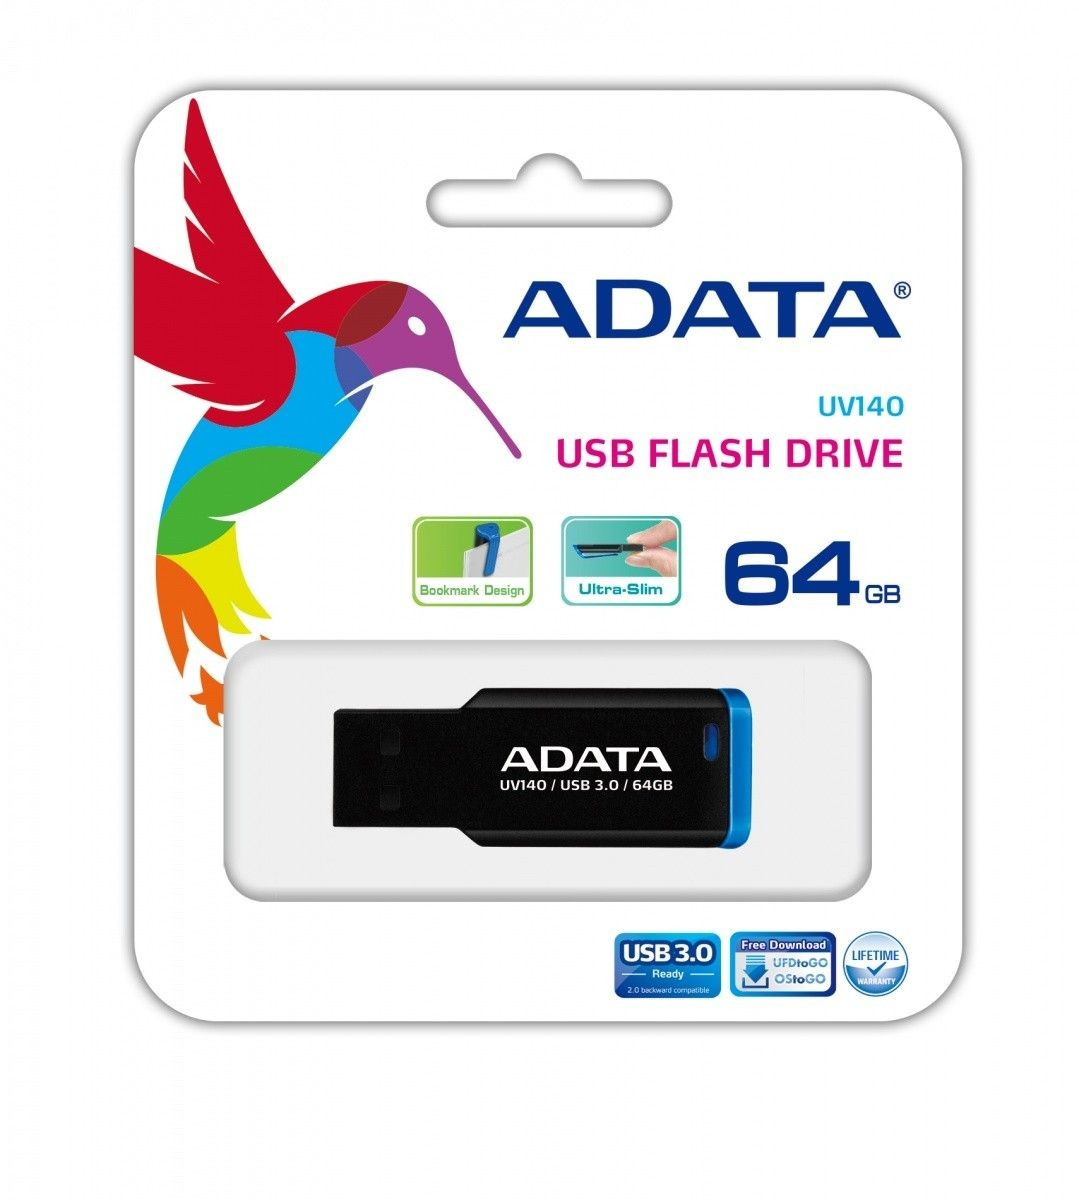 A-Data Adata Flash Drive UV140, 64GB, USB 3.0, black and blue